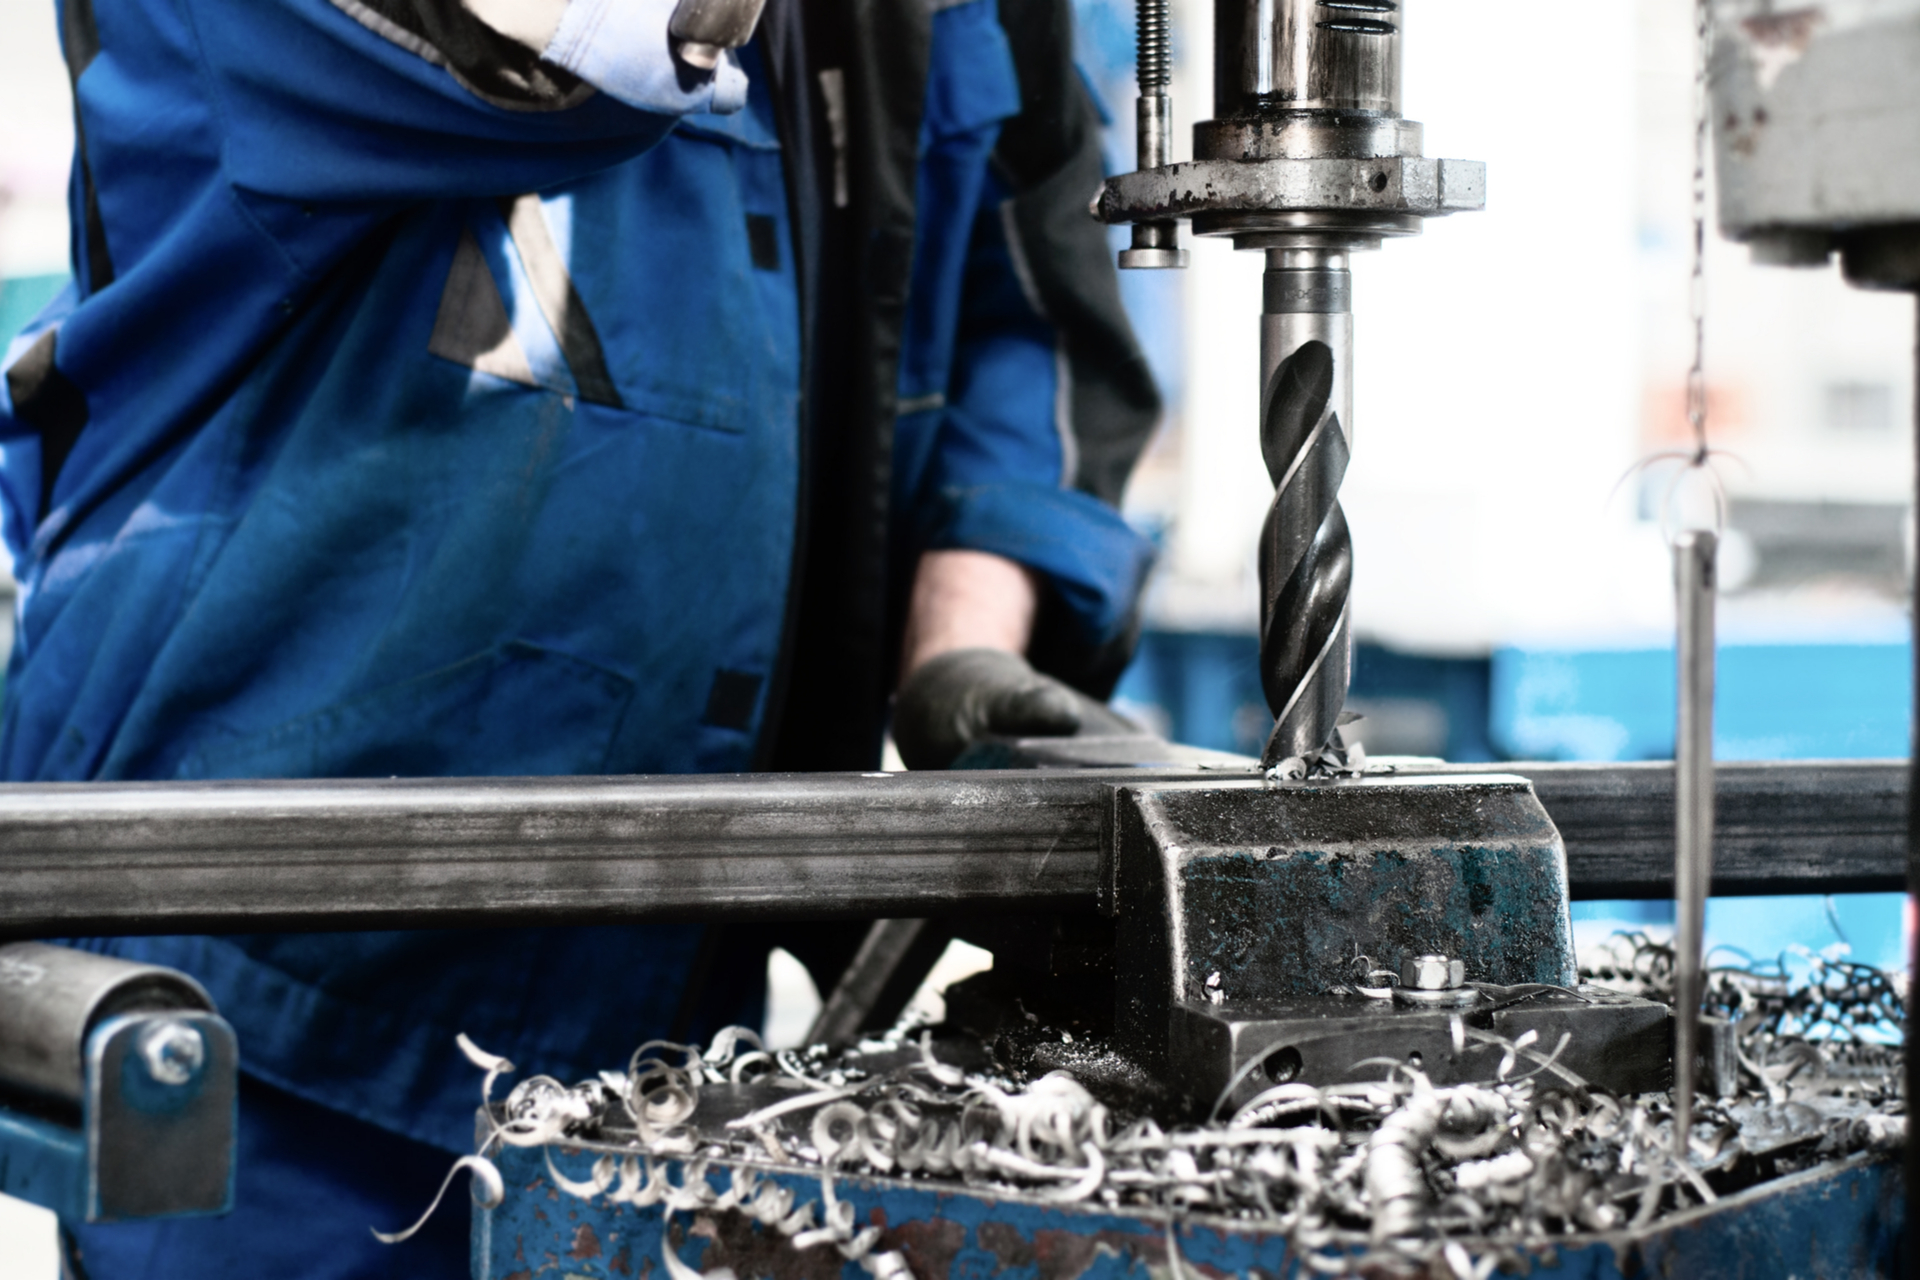 General Metal Fabrication Business FOR SALE